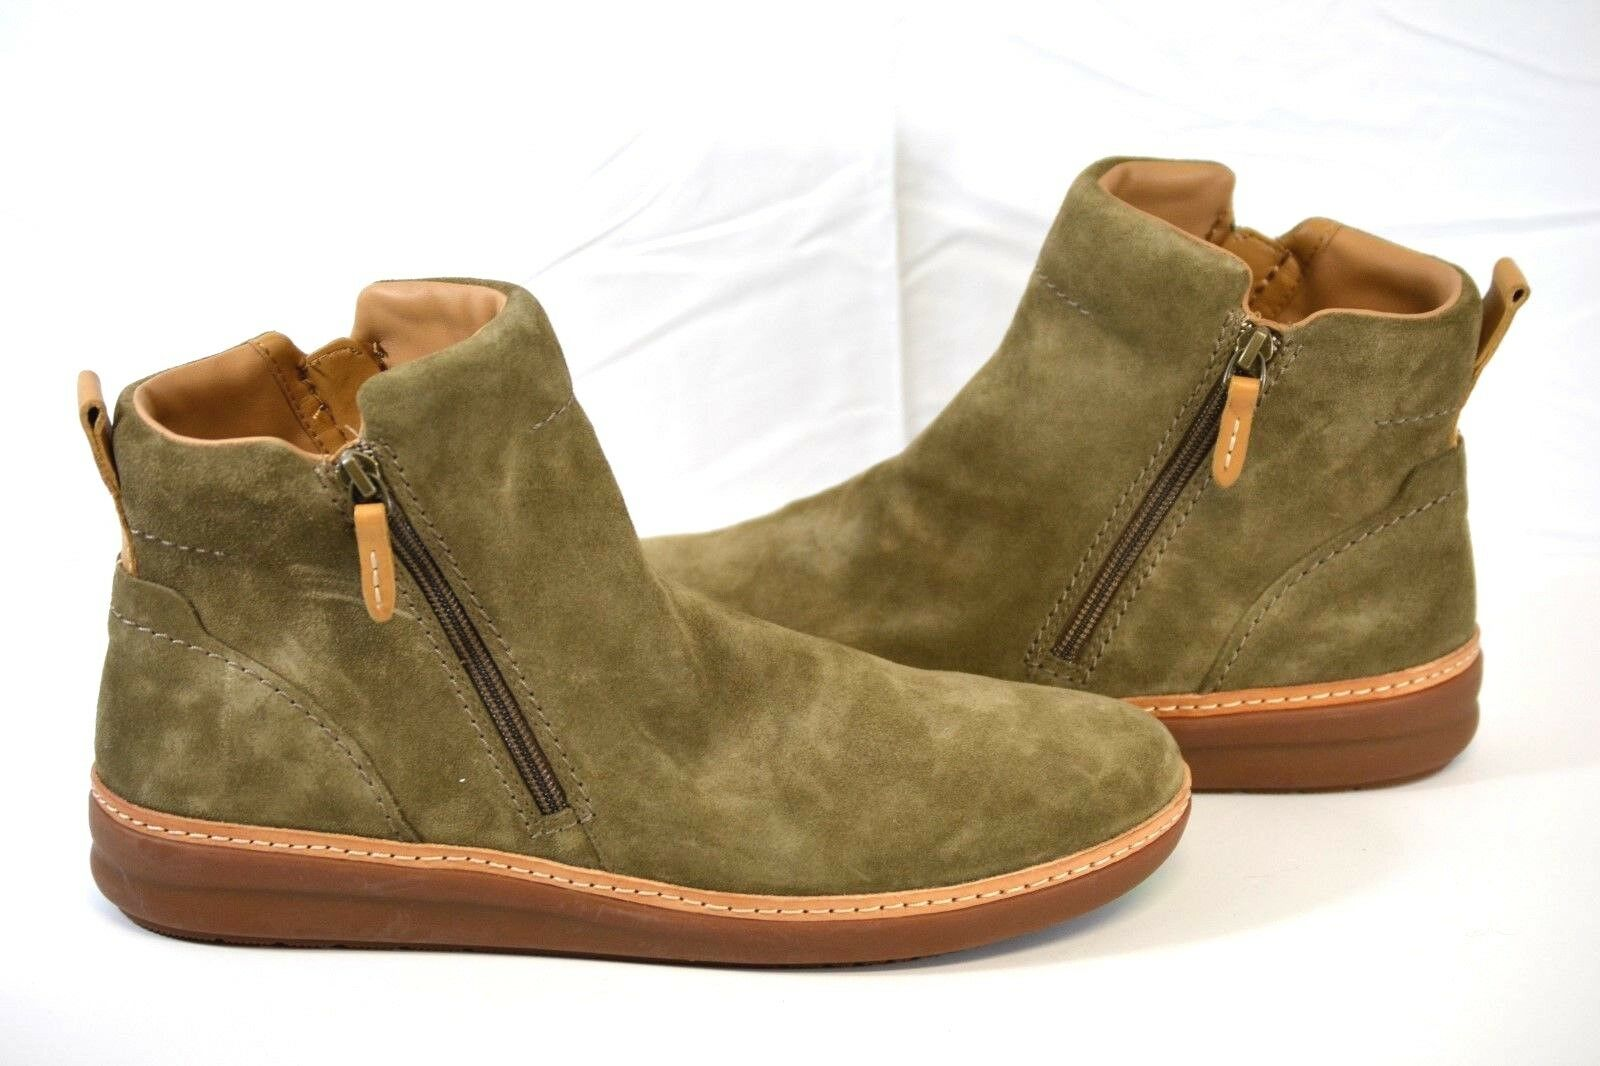 CLARKS Amberlee Rosi mujer Olive Suede Ankle botaies 12M US NEW